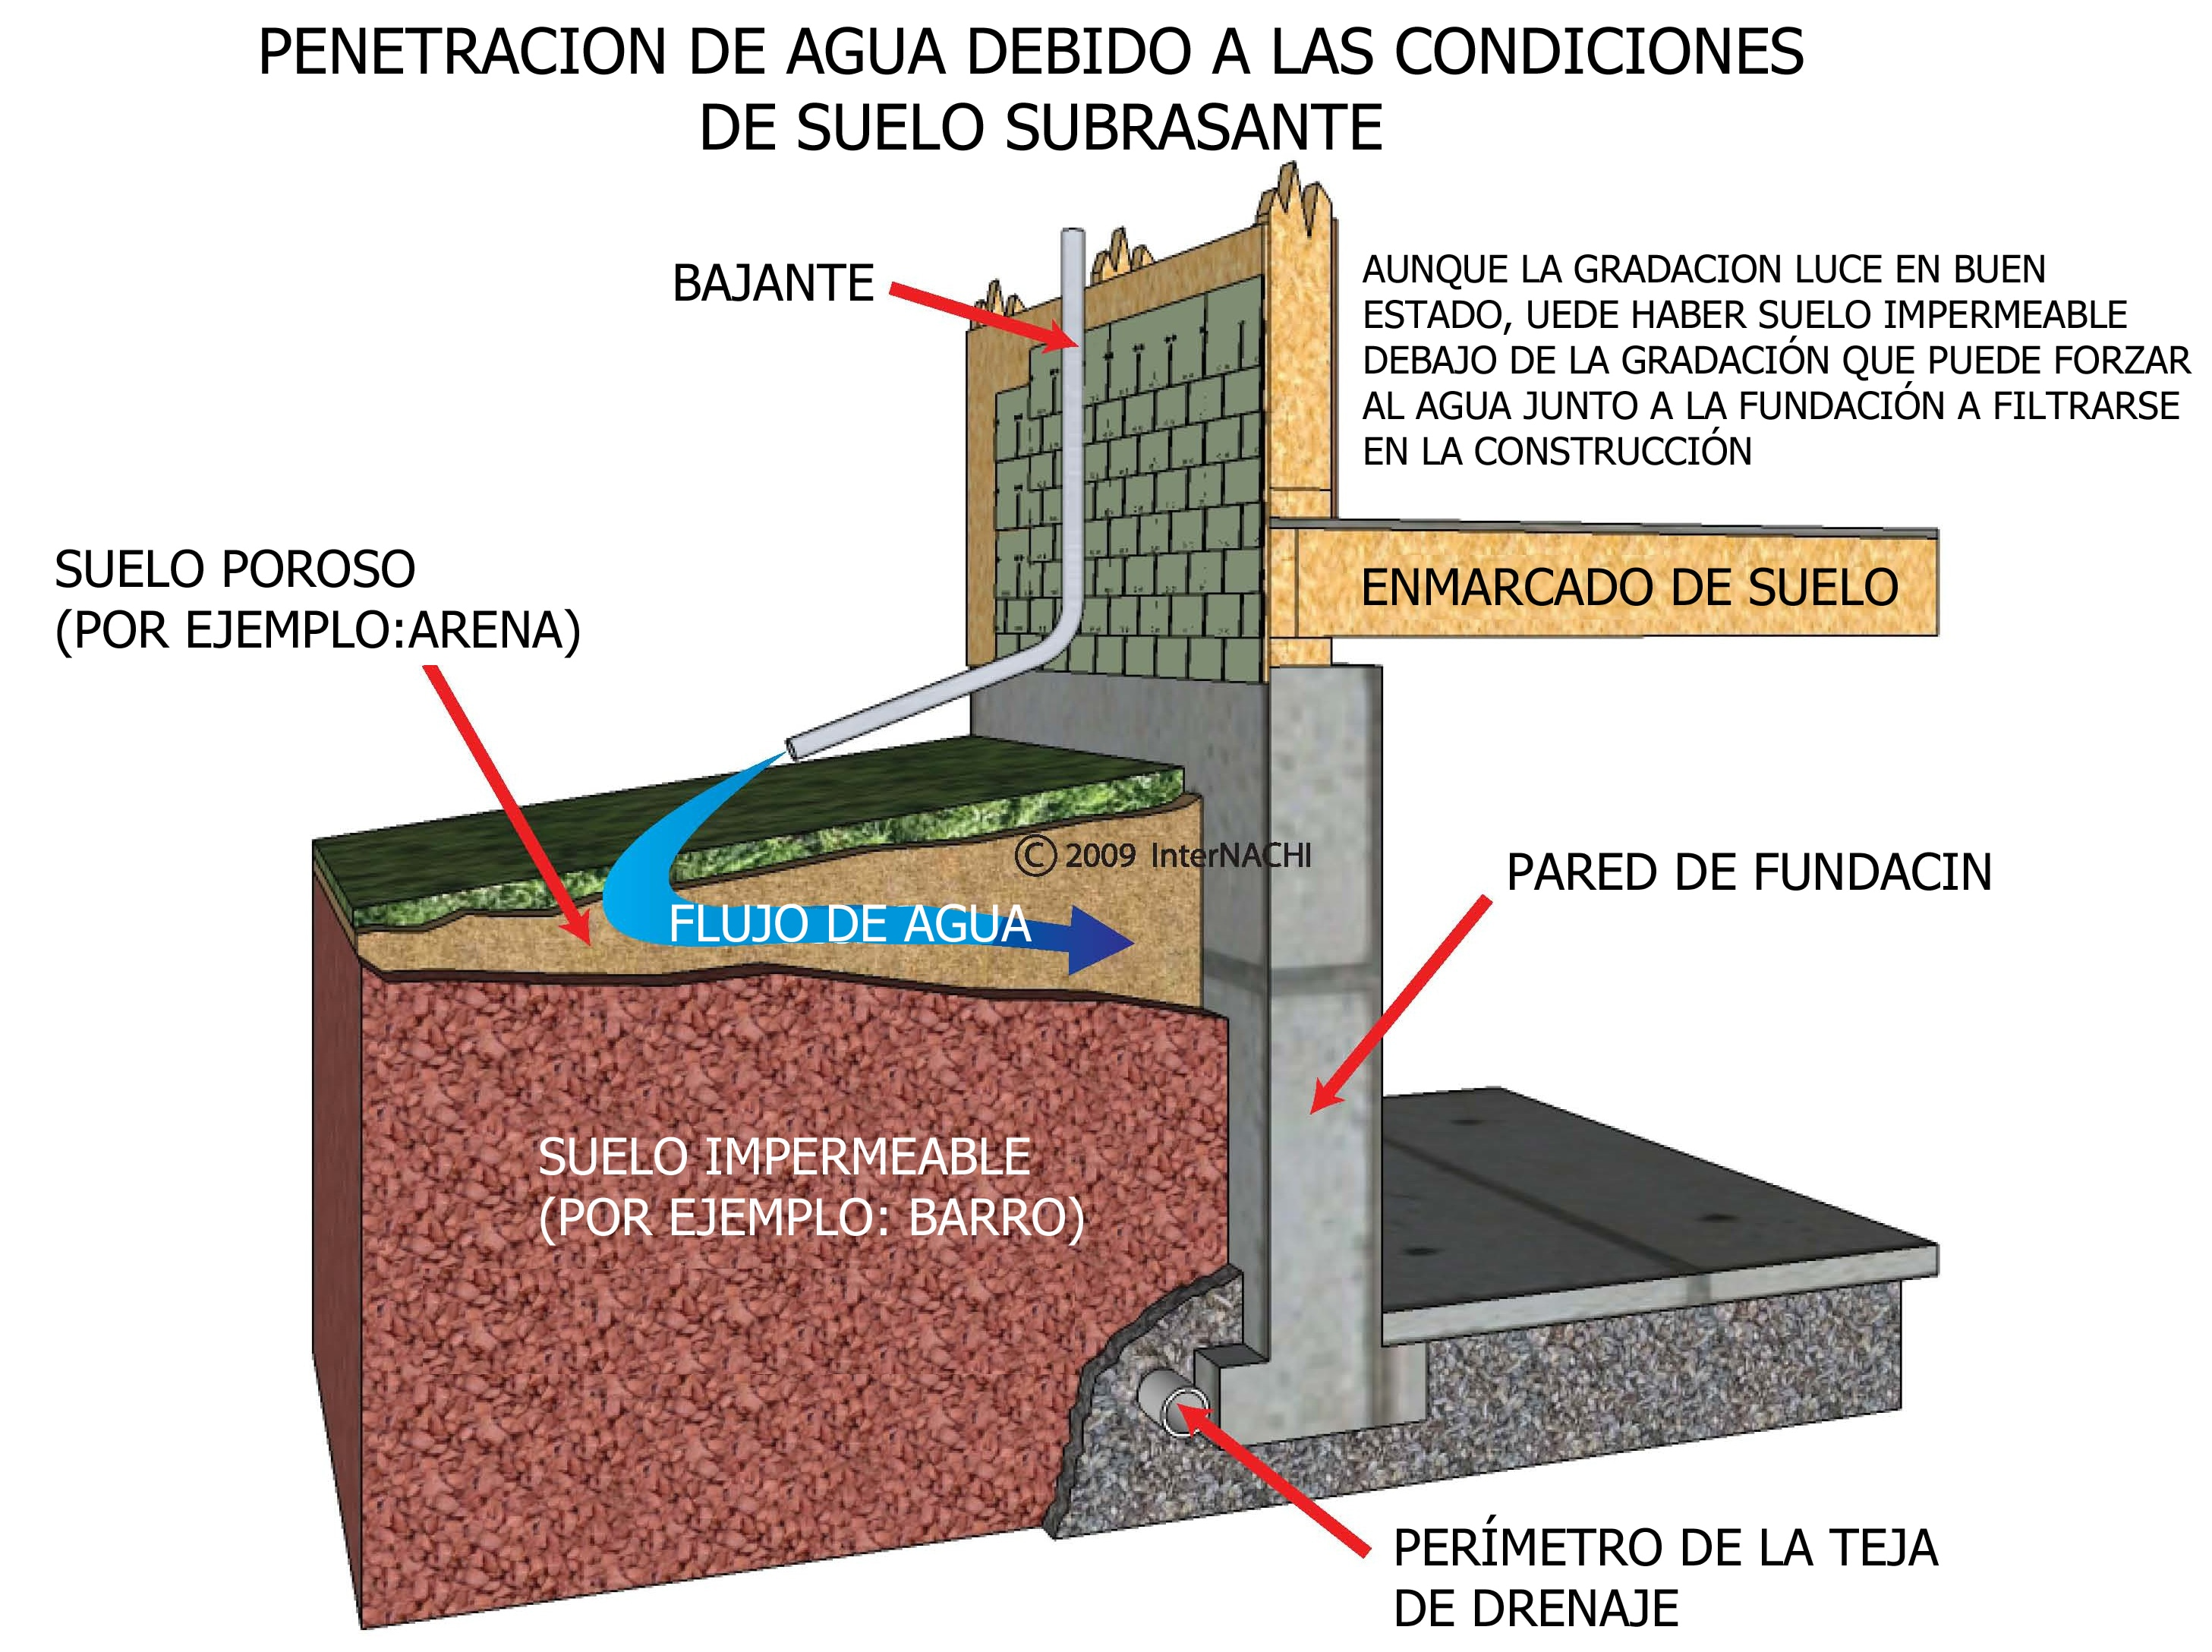 Water penetration and soil conditions.